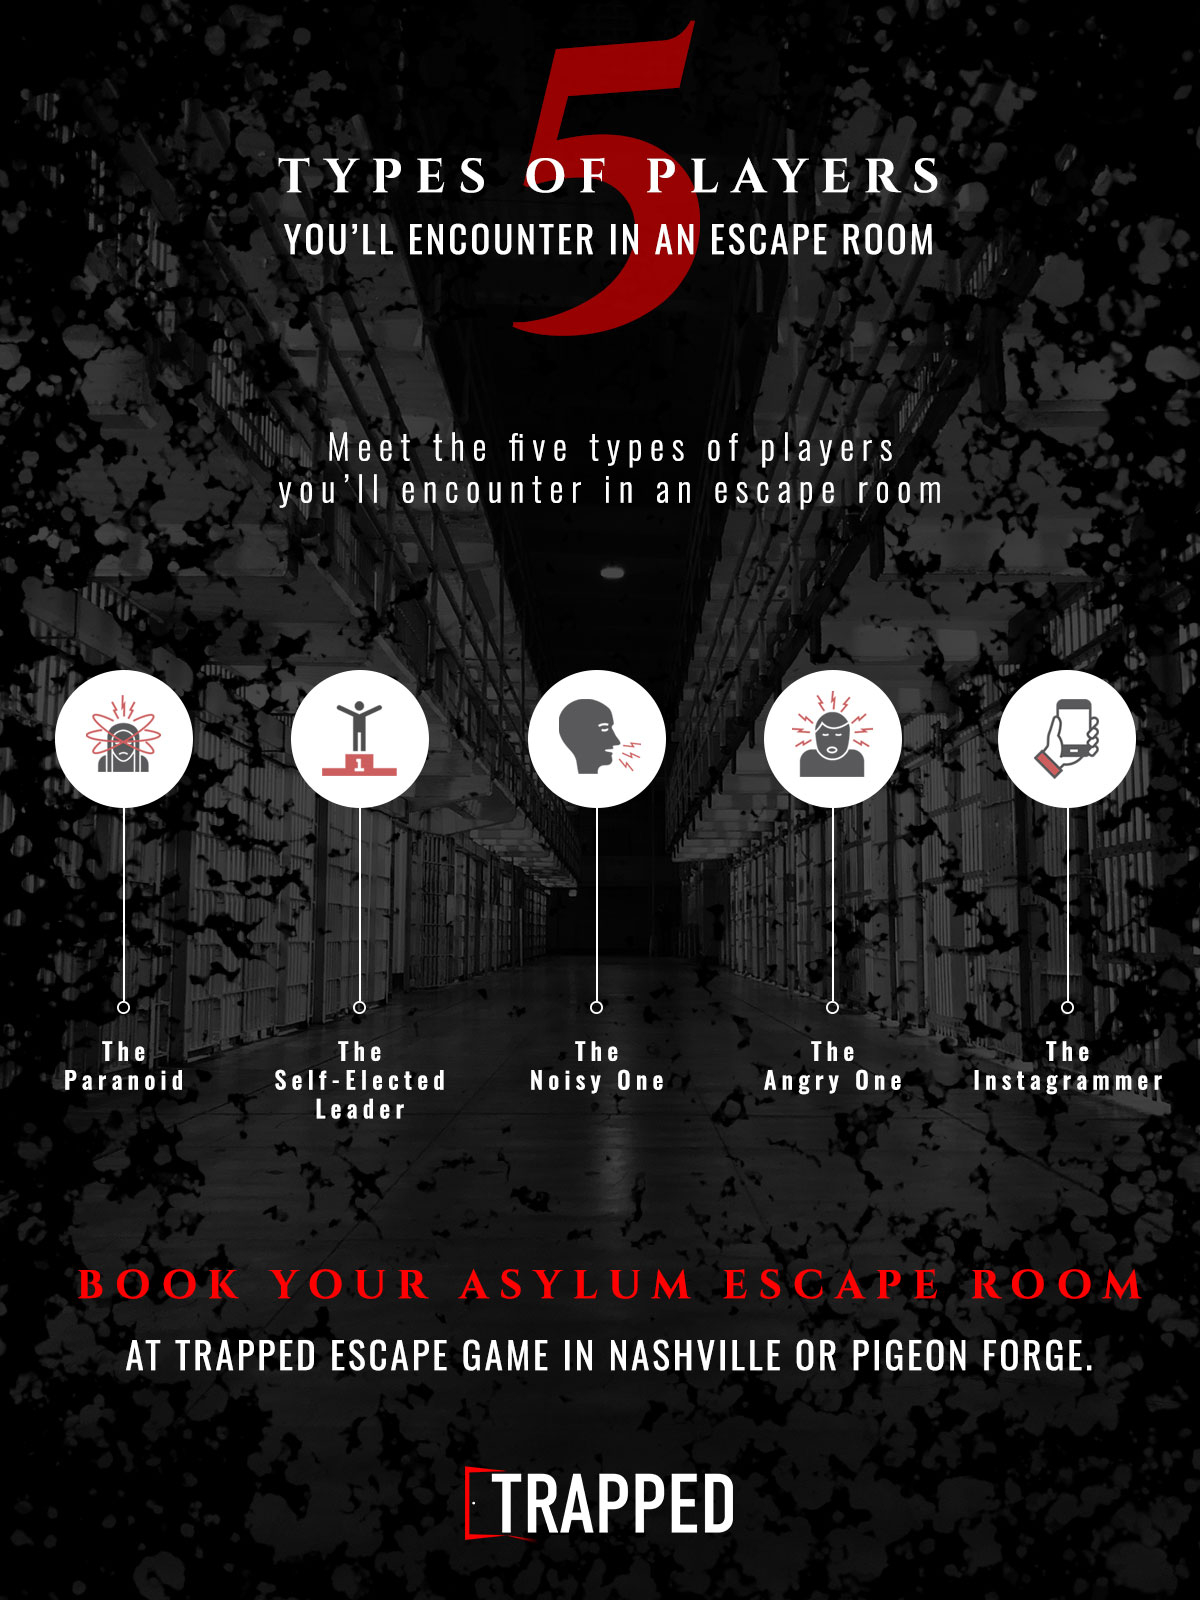 5-types-of-players-in-an-escape-room.jpg